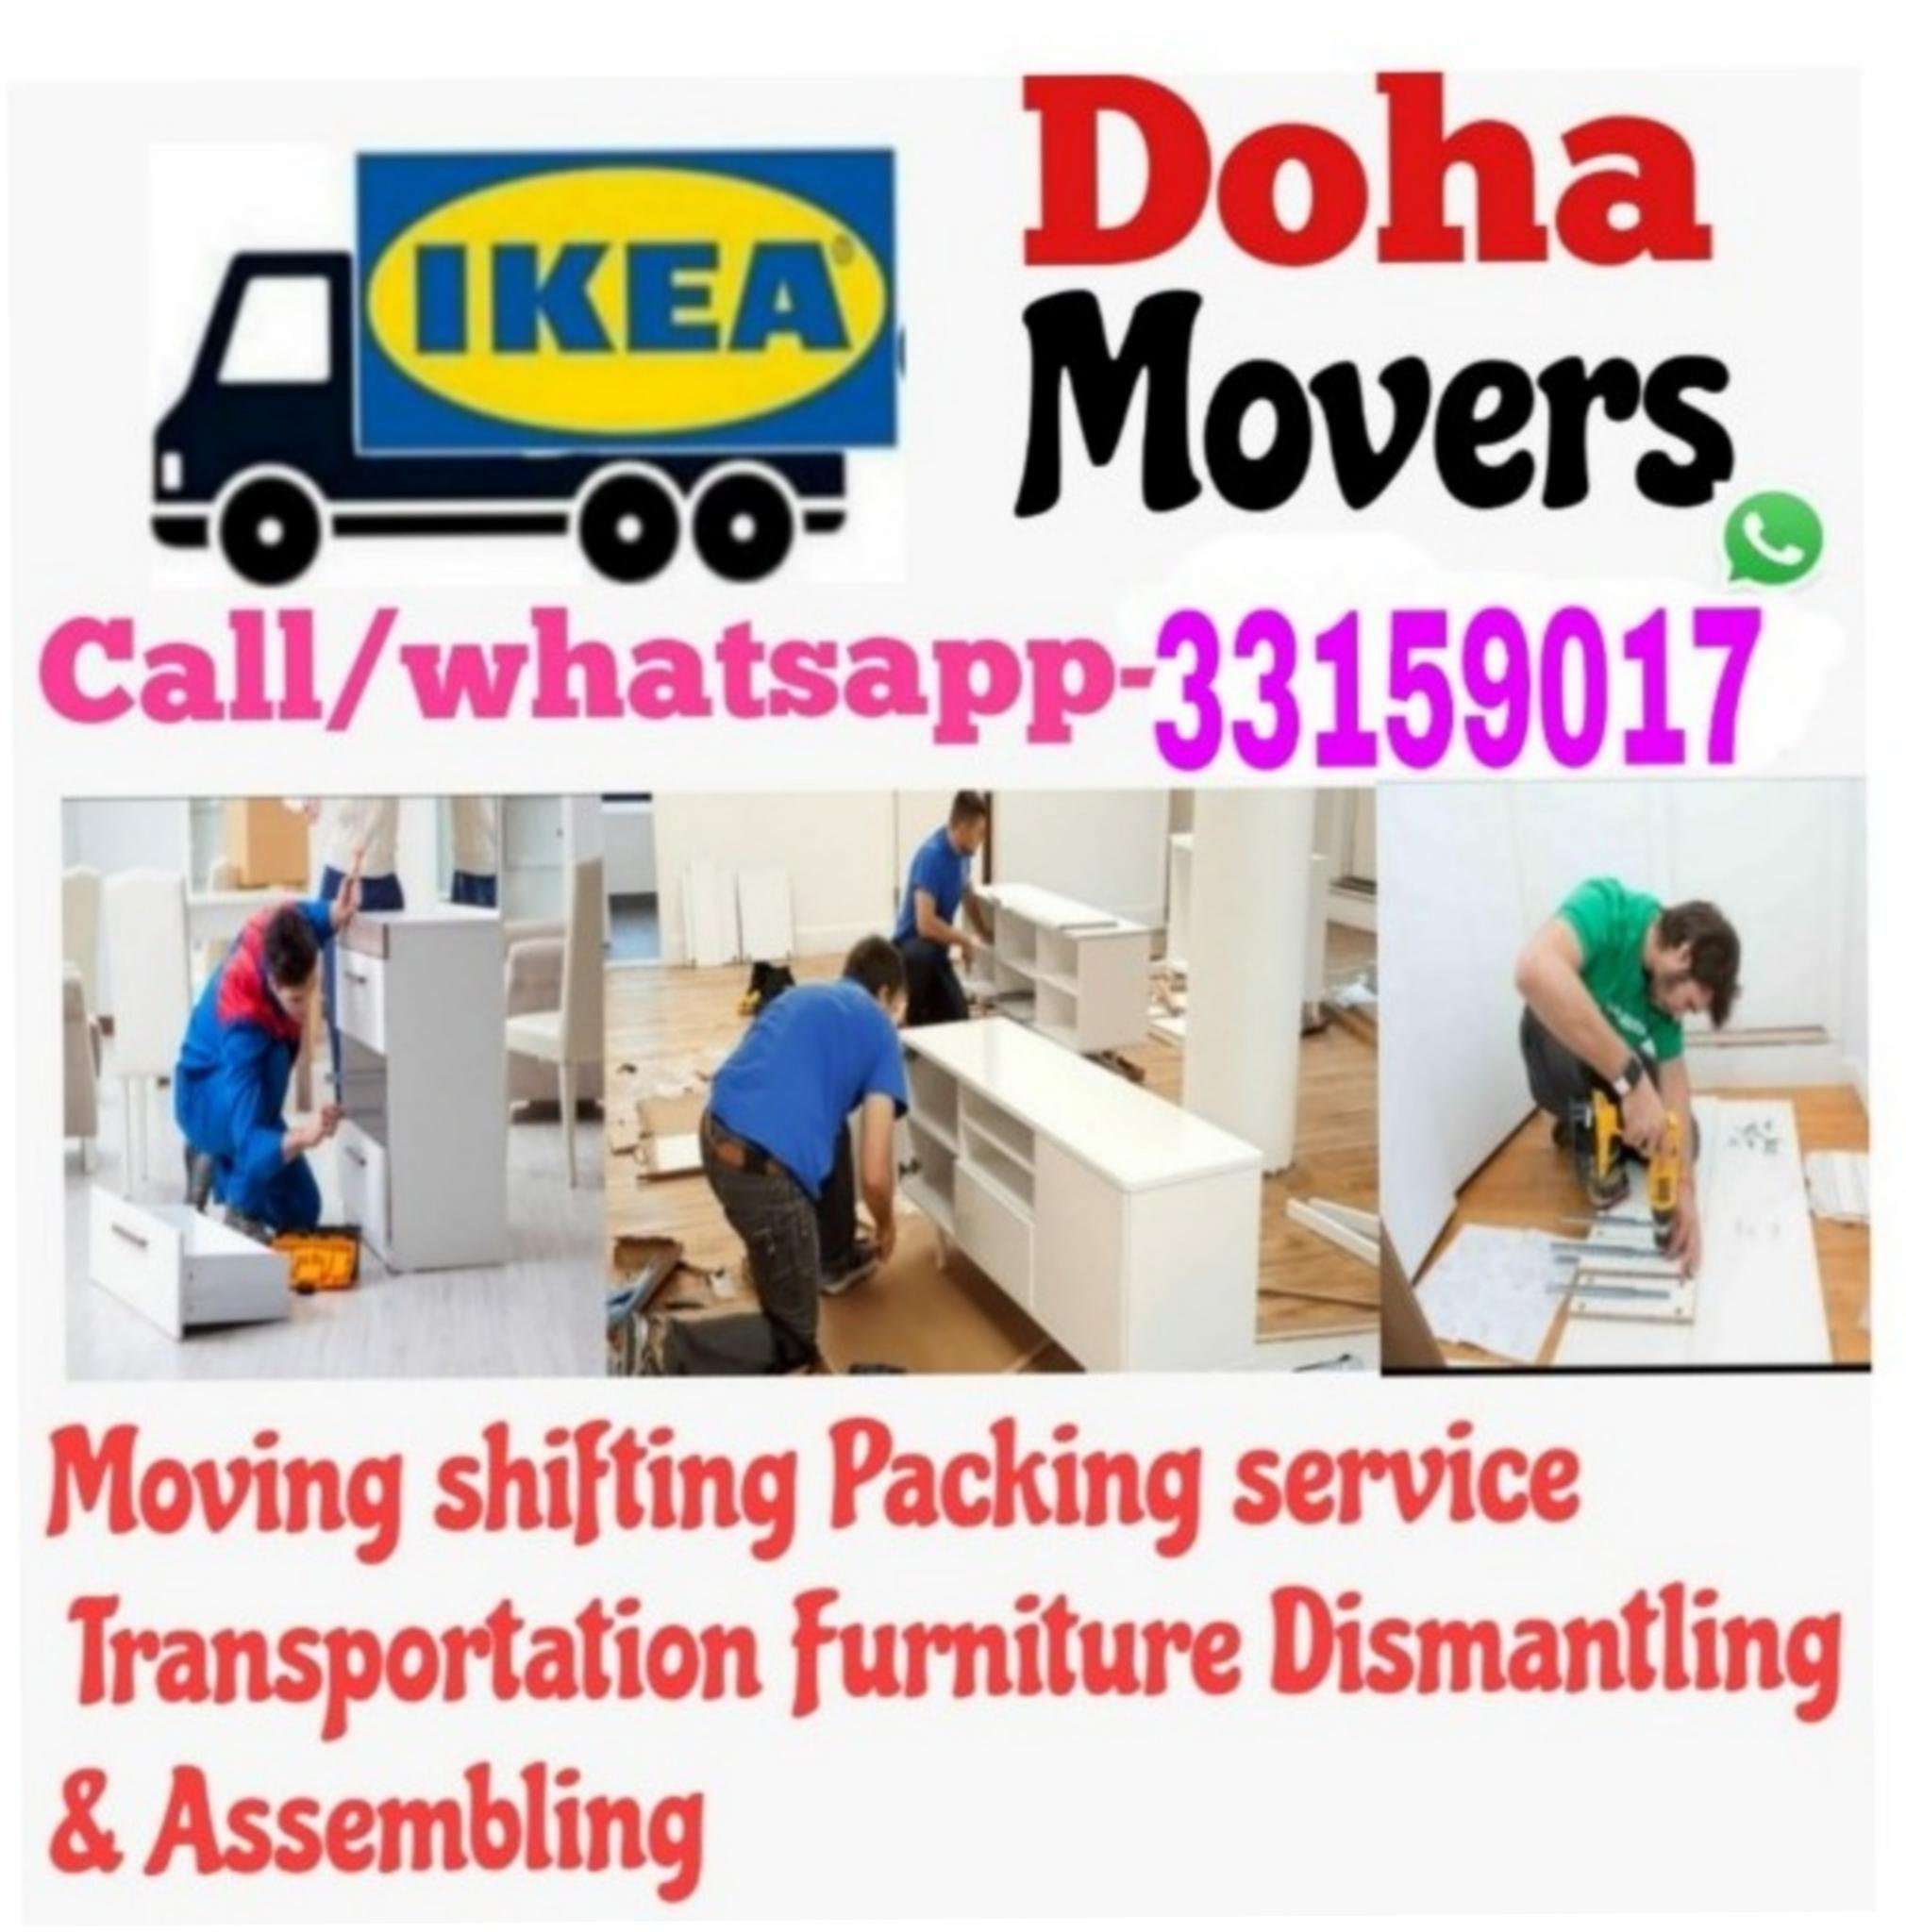 Moving and Shifting all over Qatar. 33159017 Good